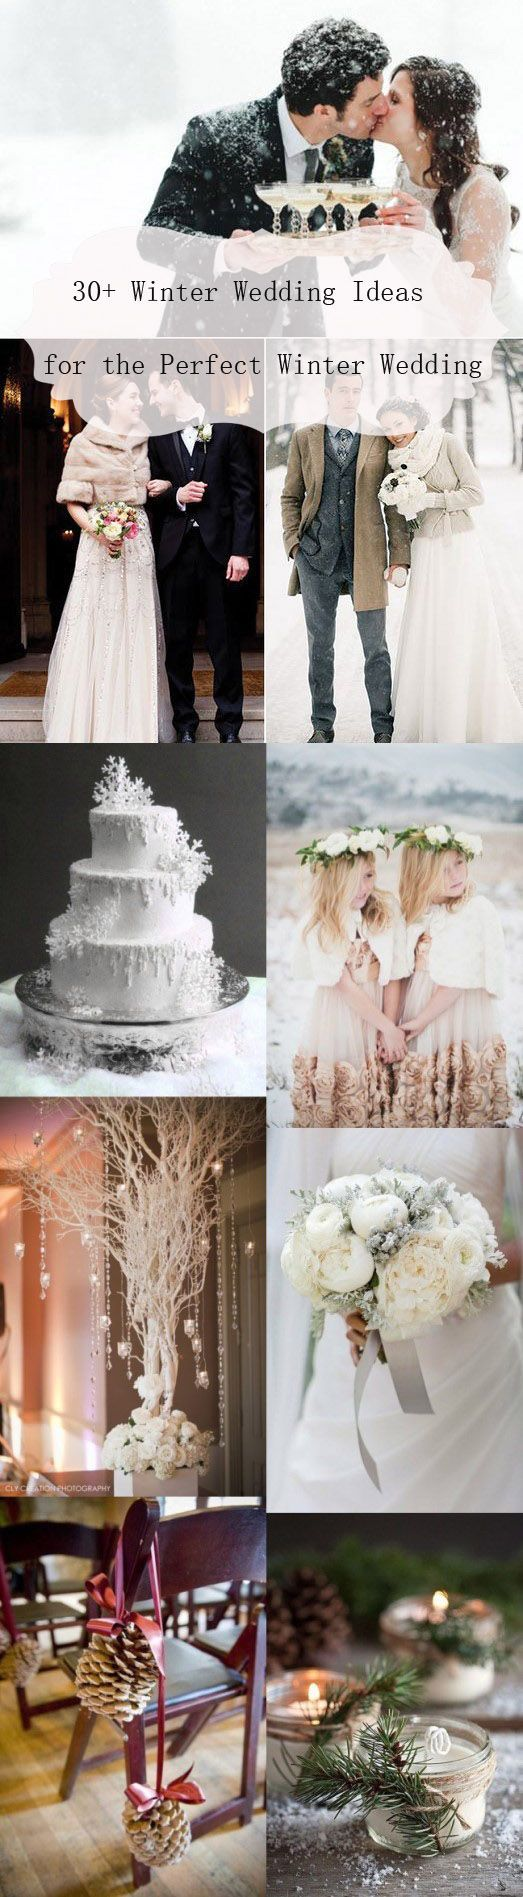 """When planning a wedding, winter is probably the last season that people have in mind, it's quite different from what people think about the """"dream wedding"""". In fact, there are many advantages of throw a winter wedding."""